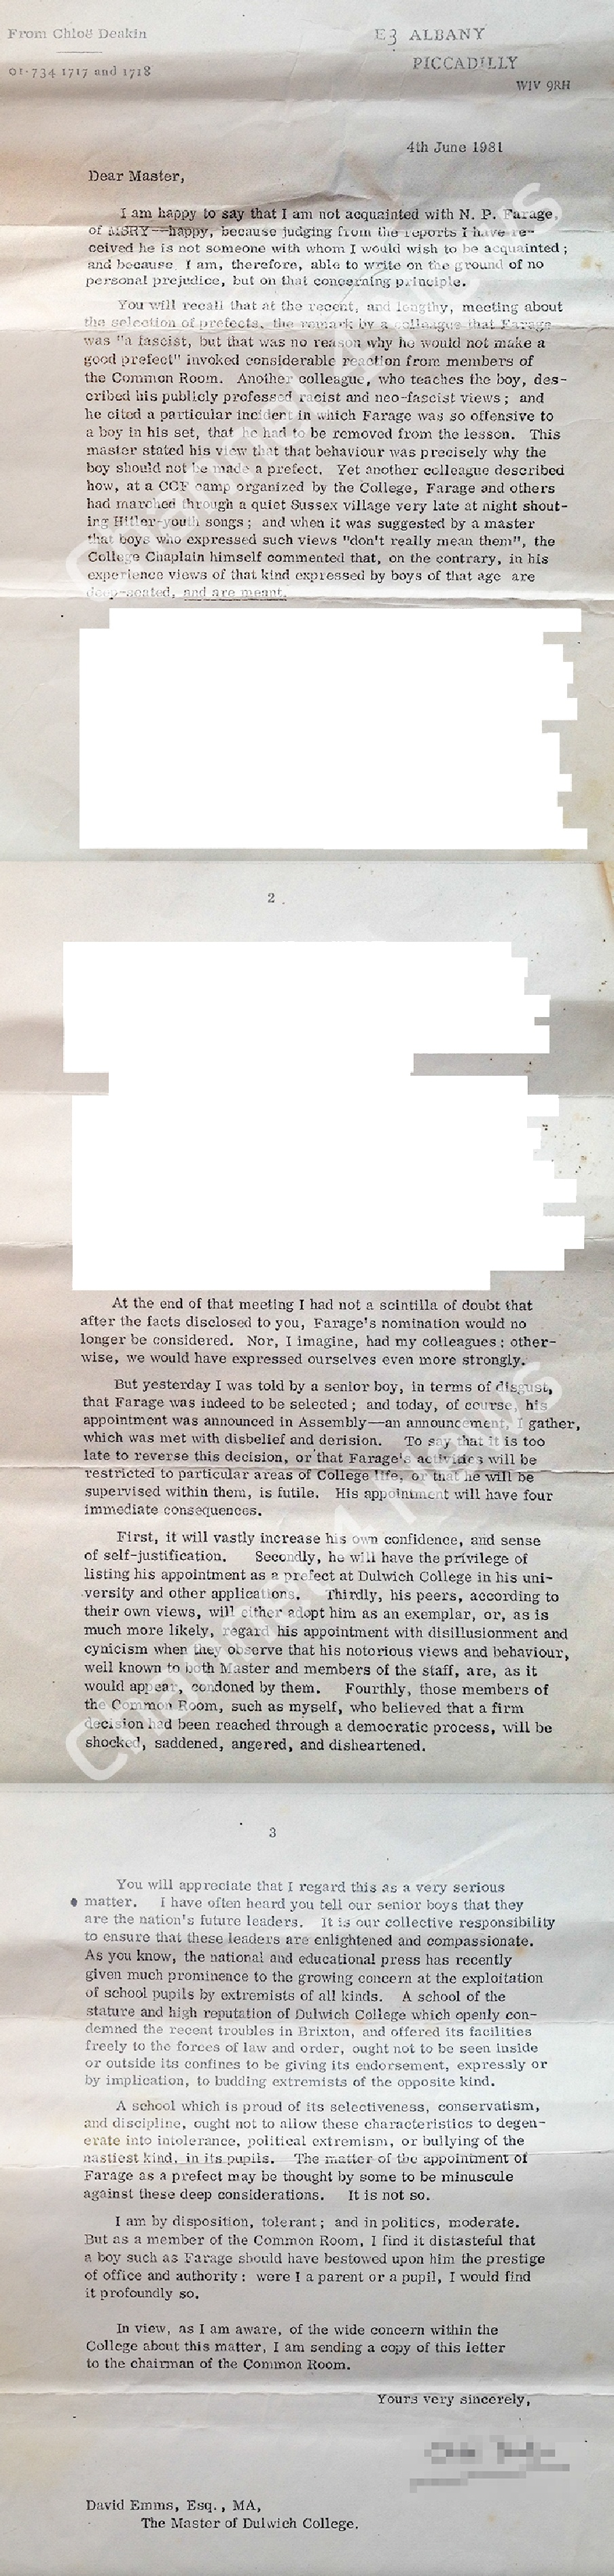 FARAGE School Letter 1981 01